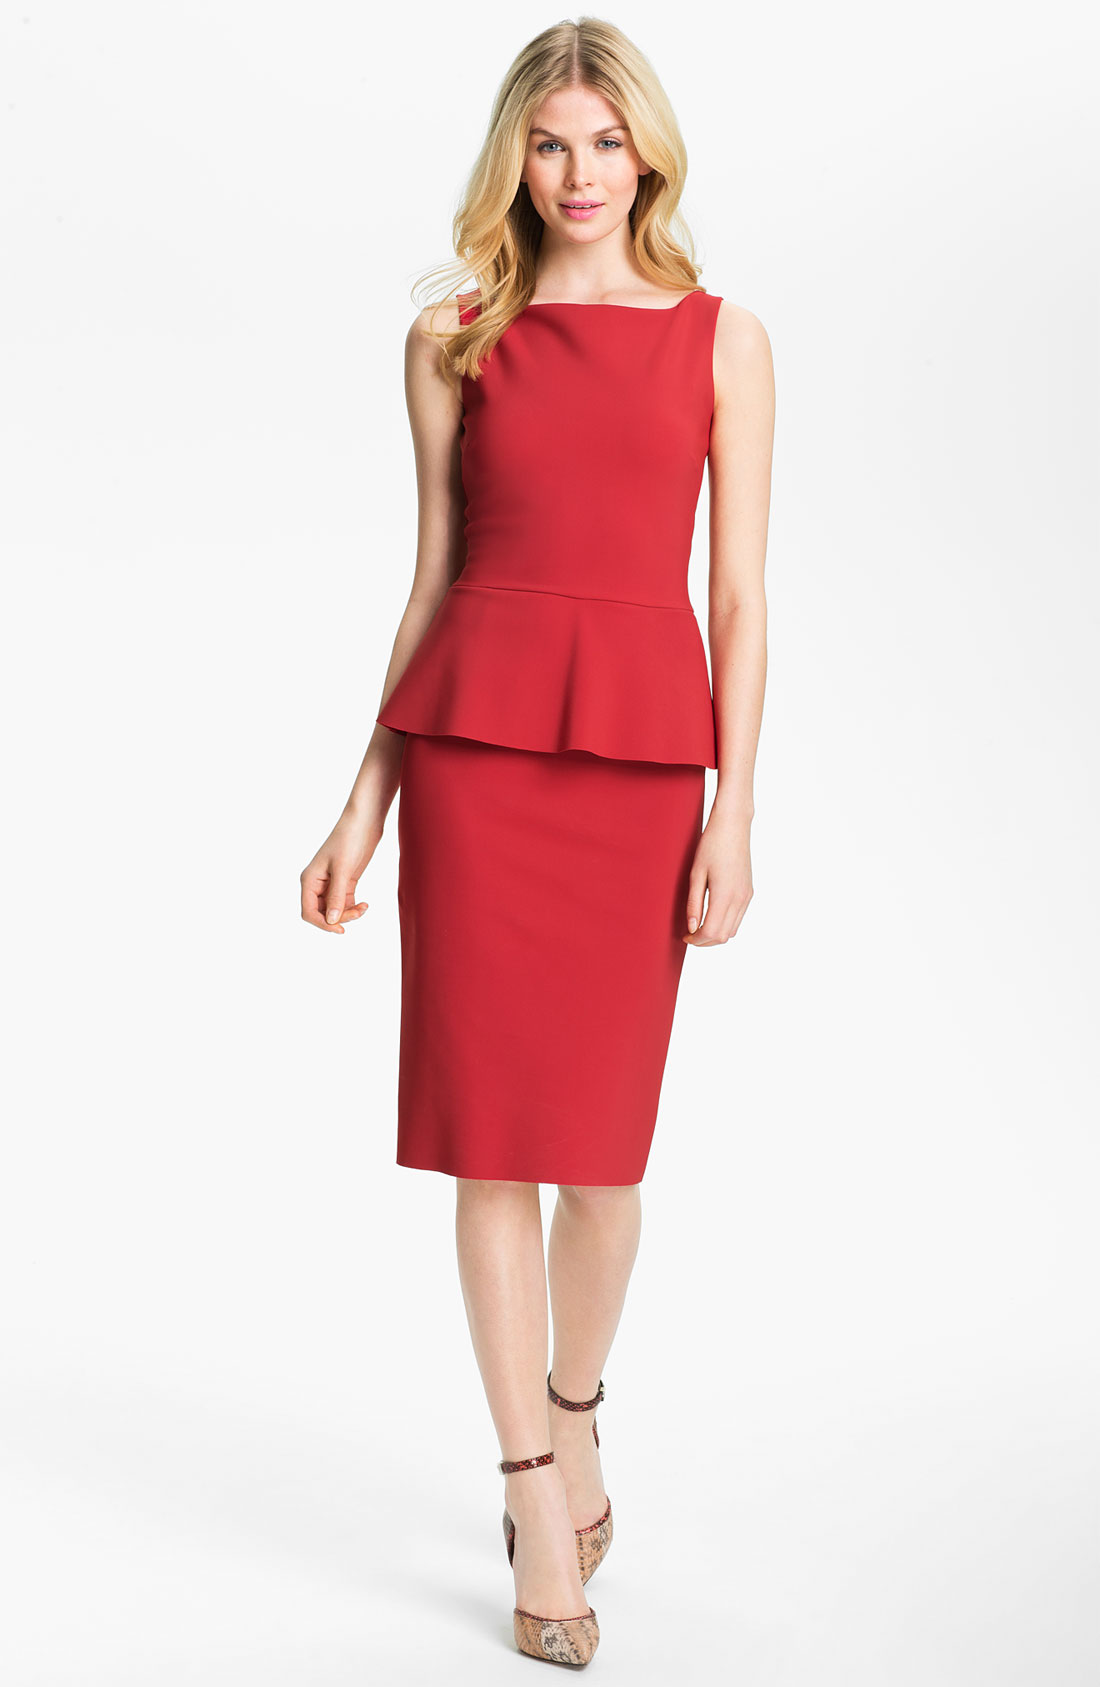 Chiara Boni The Most Popular Dress In America: La Petite Robe Di Chiara Boni Sleeveless Peplum Sheath